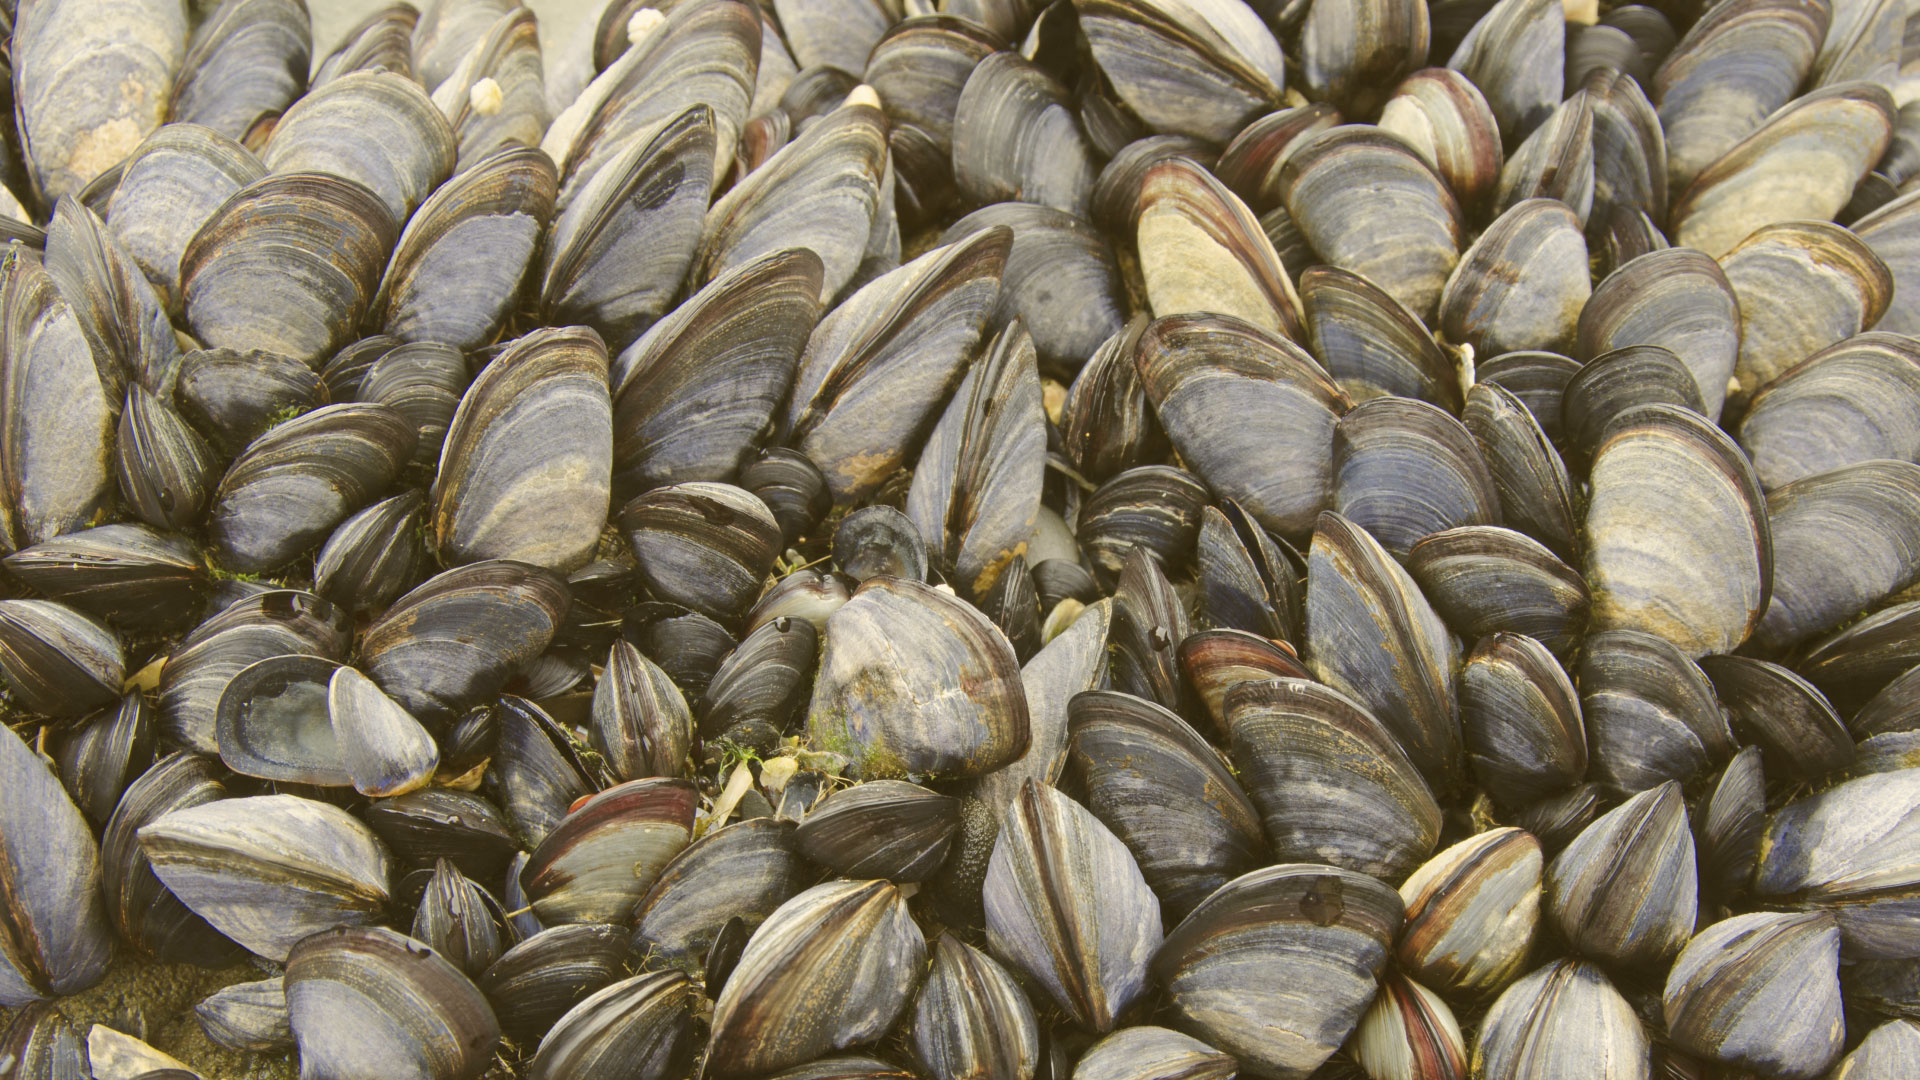 Climate Change A Boon To Mussel Population